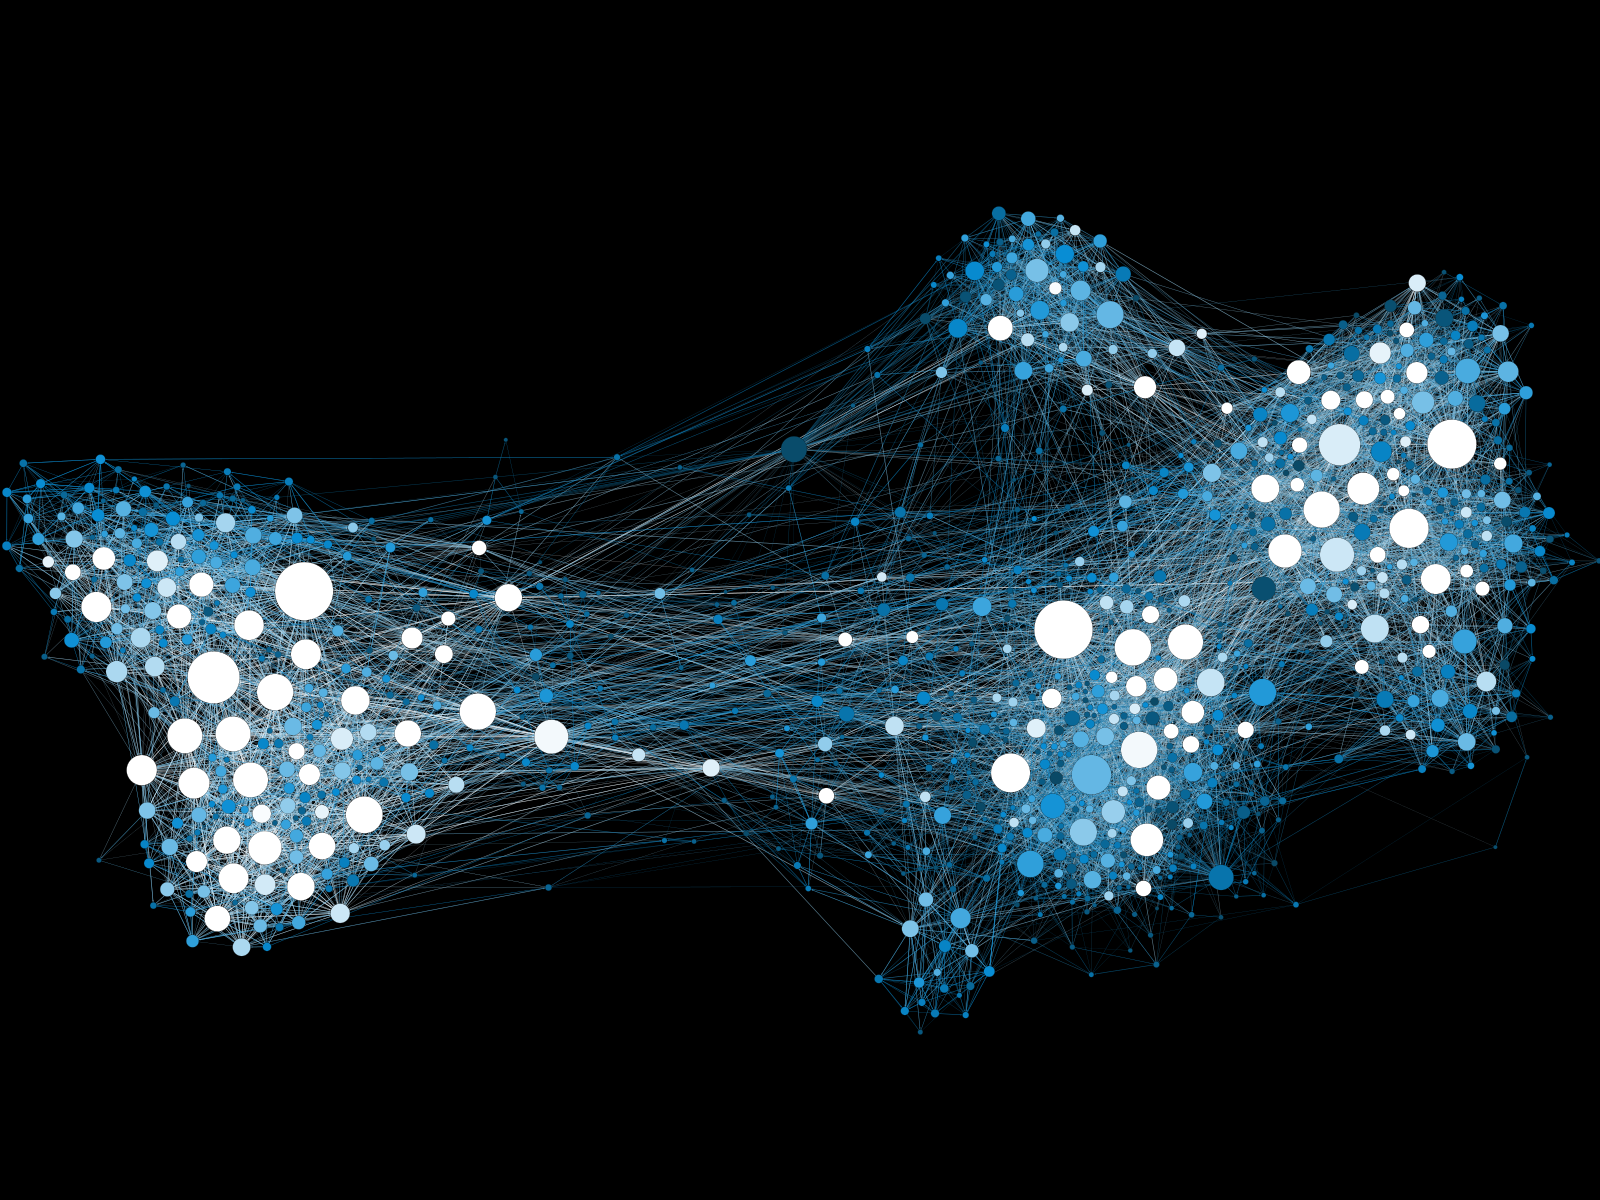 File:Social Network Visualization.png - Wikimedia Commons